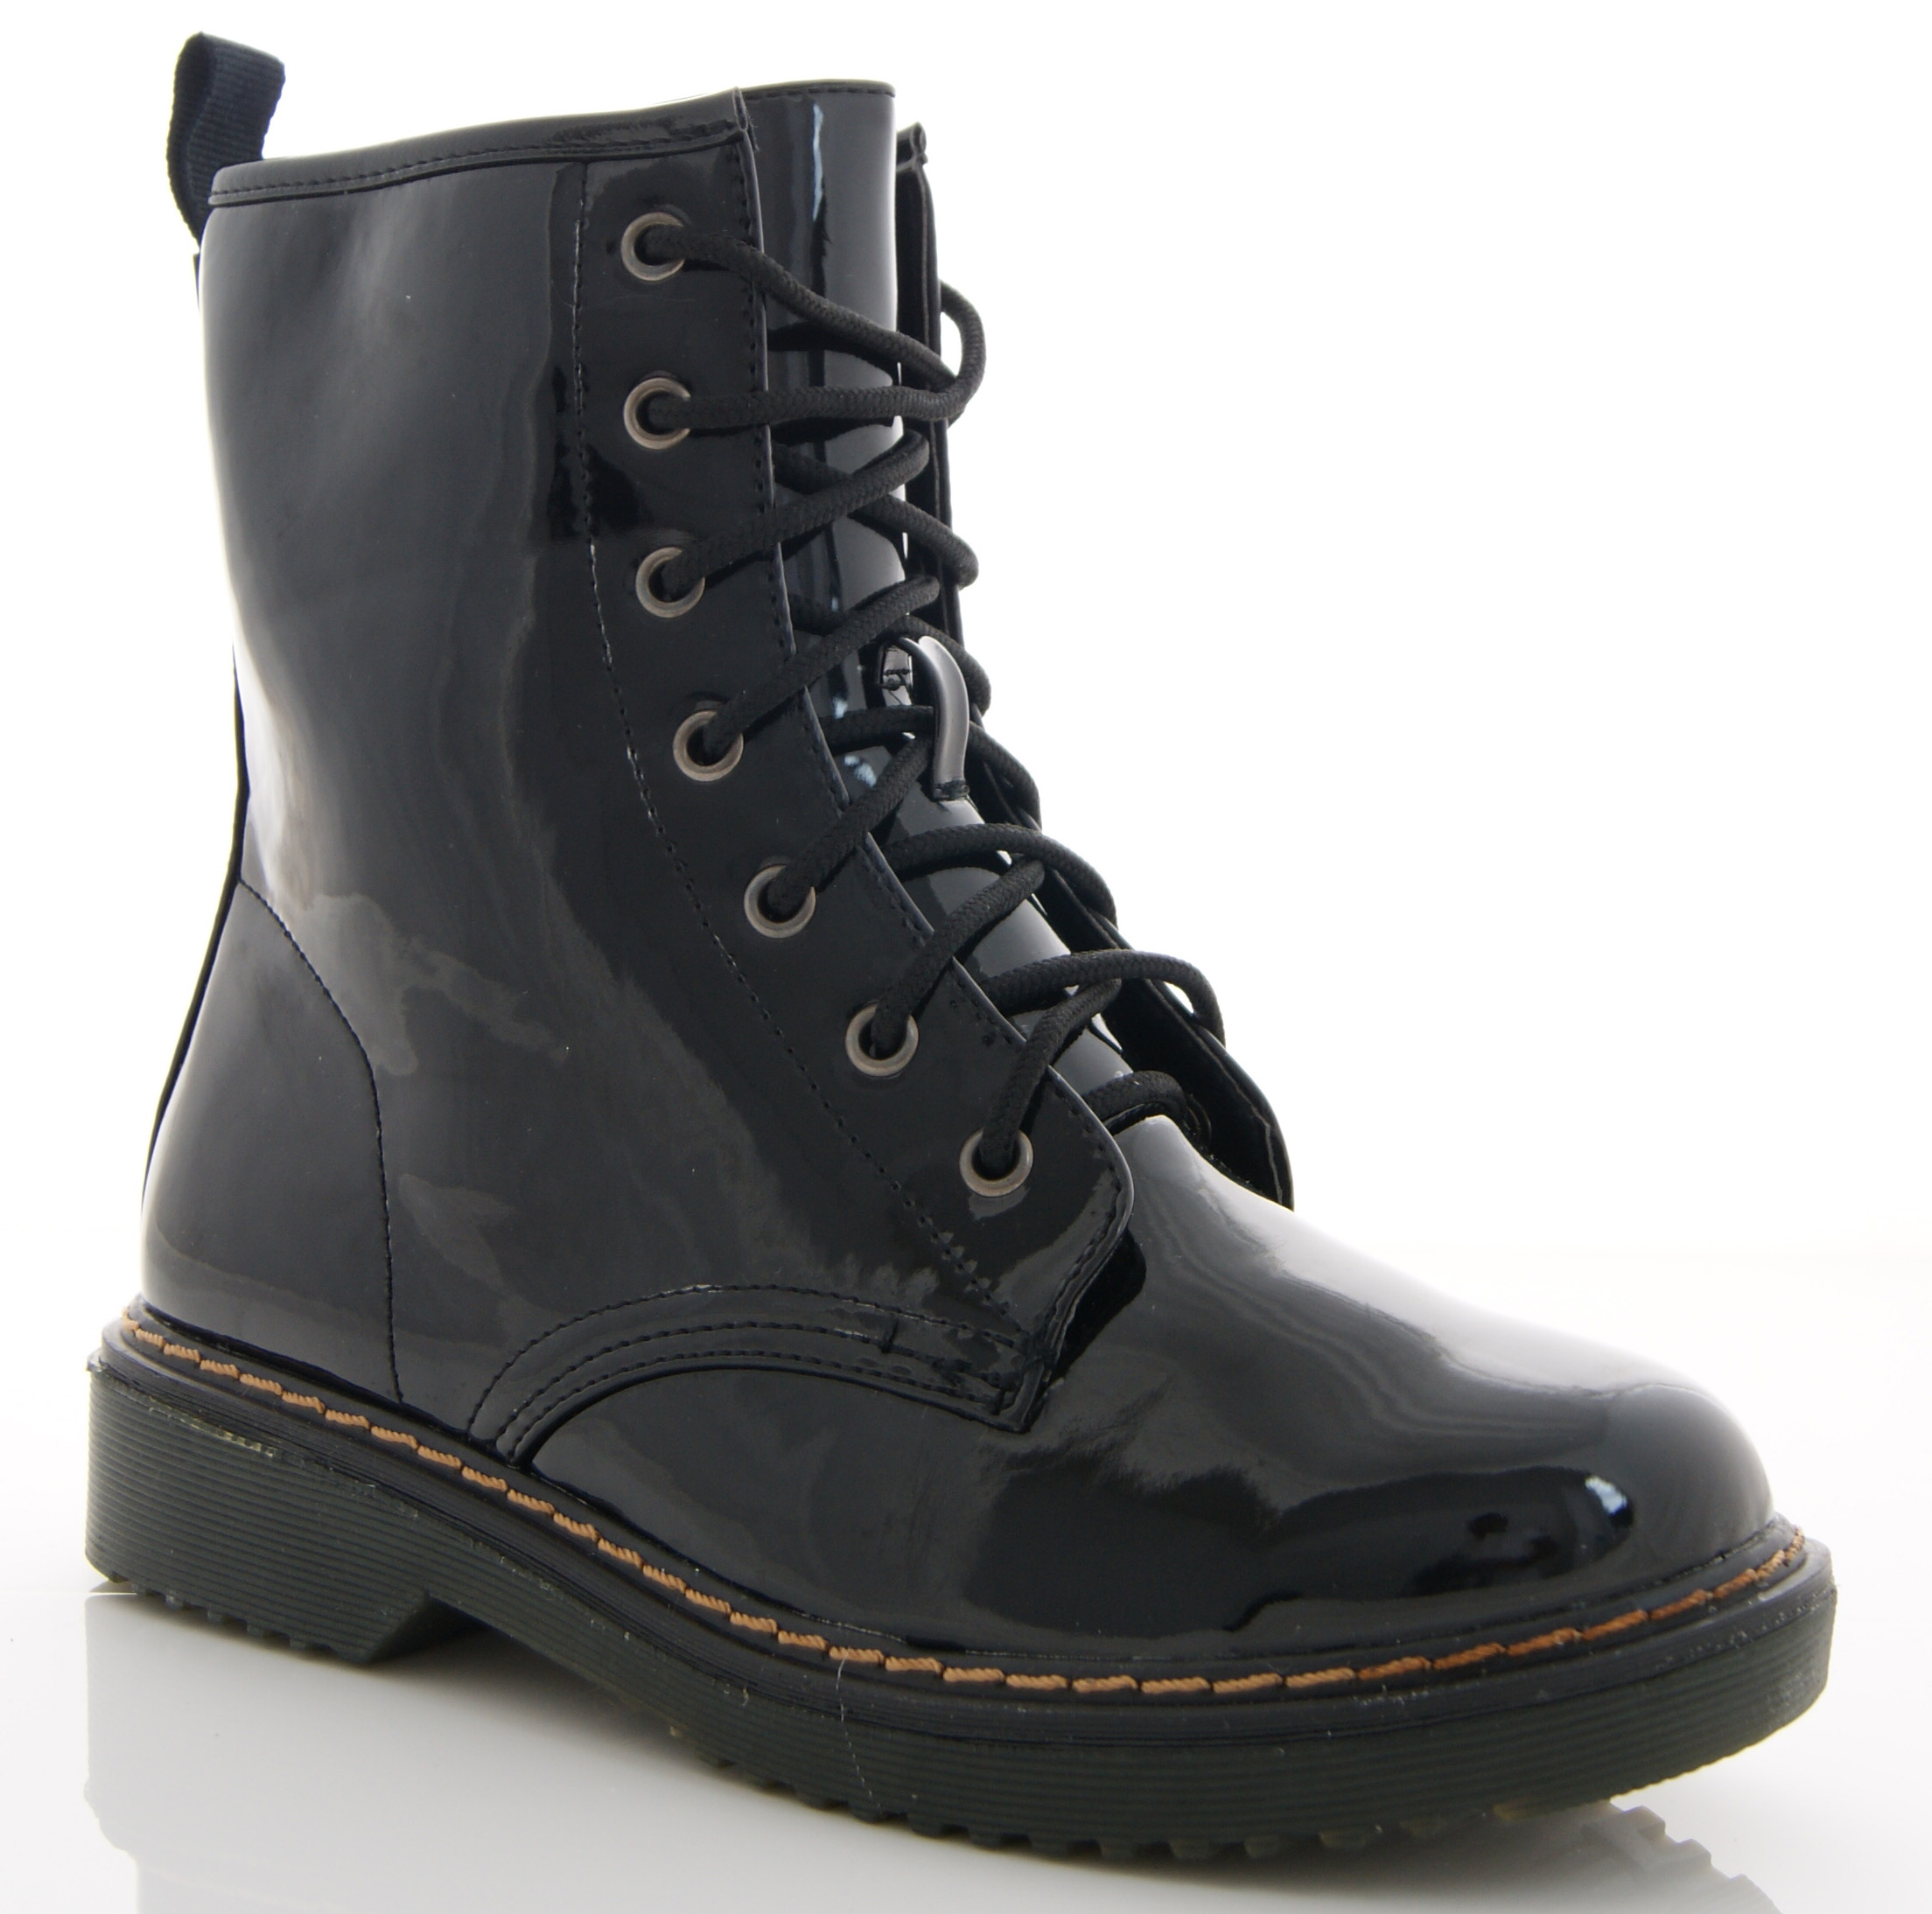 760f2389c029 Winter Boots Patent Leather Ankle Boots for Women for sale